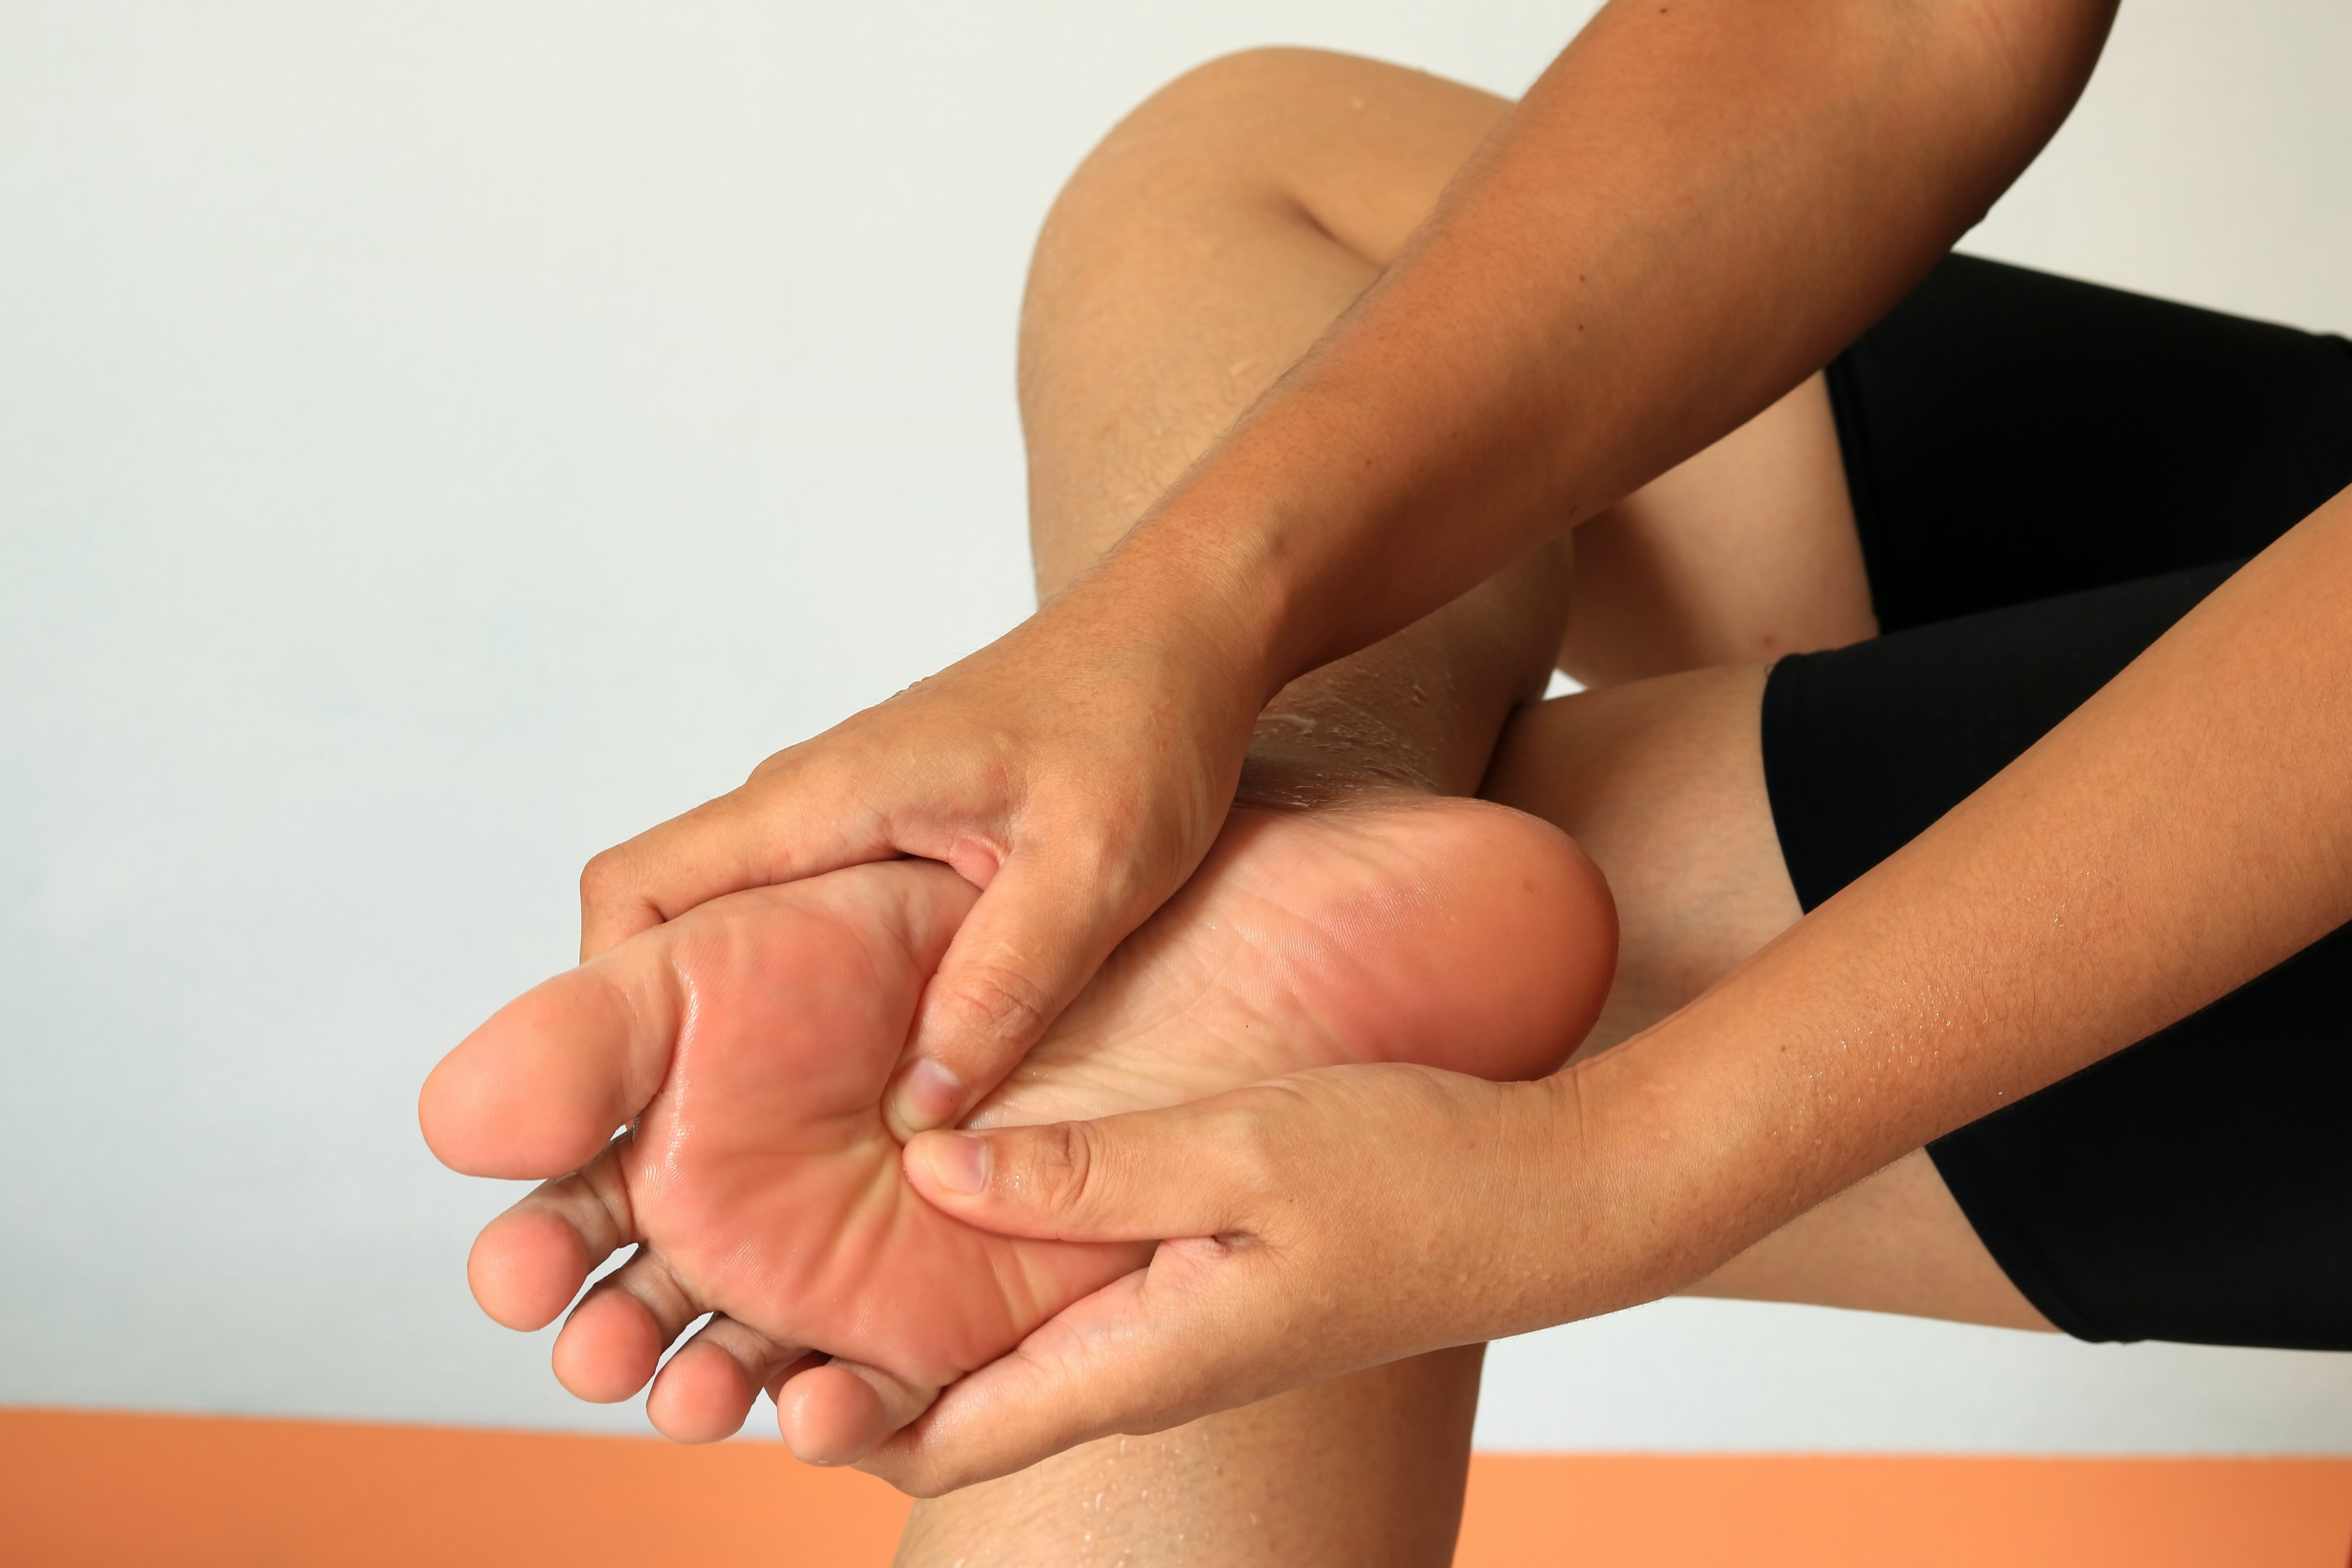 An image depicting a person suffering from pain in the middle of the foot symptoms